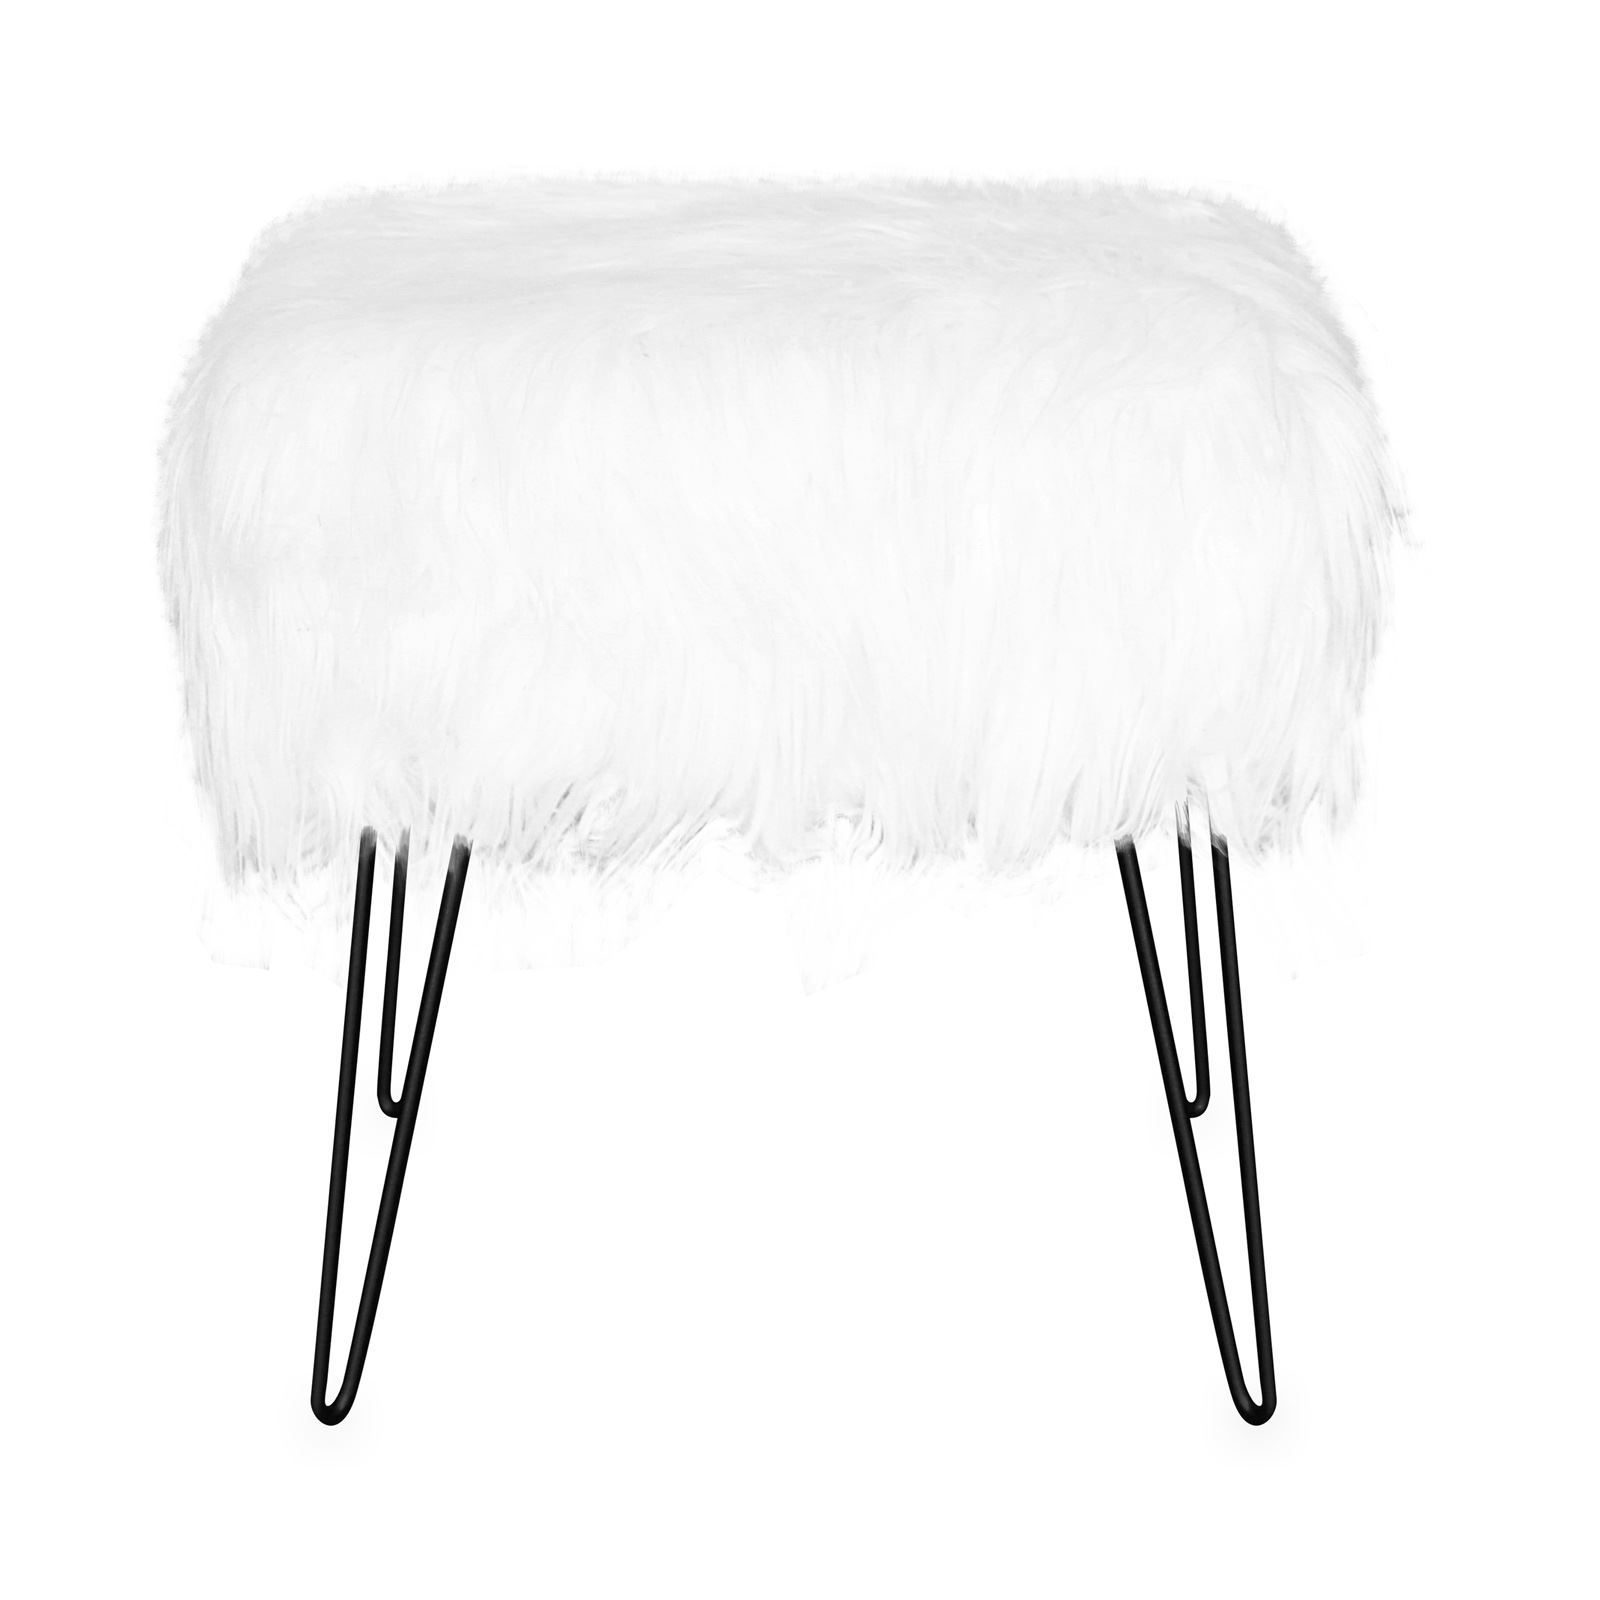 jean louis scherrer fur tabouret fausse fourrure blanc. Black Bedroom Furniture Sets. Home Design Ideas